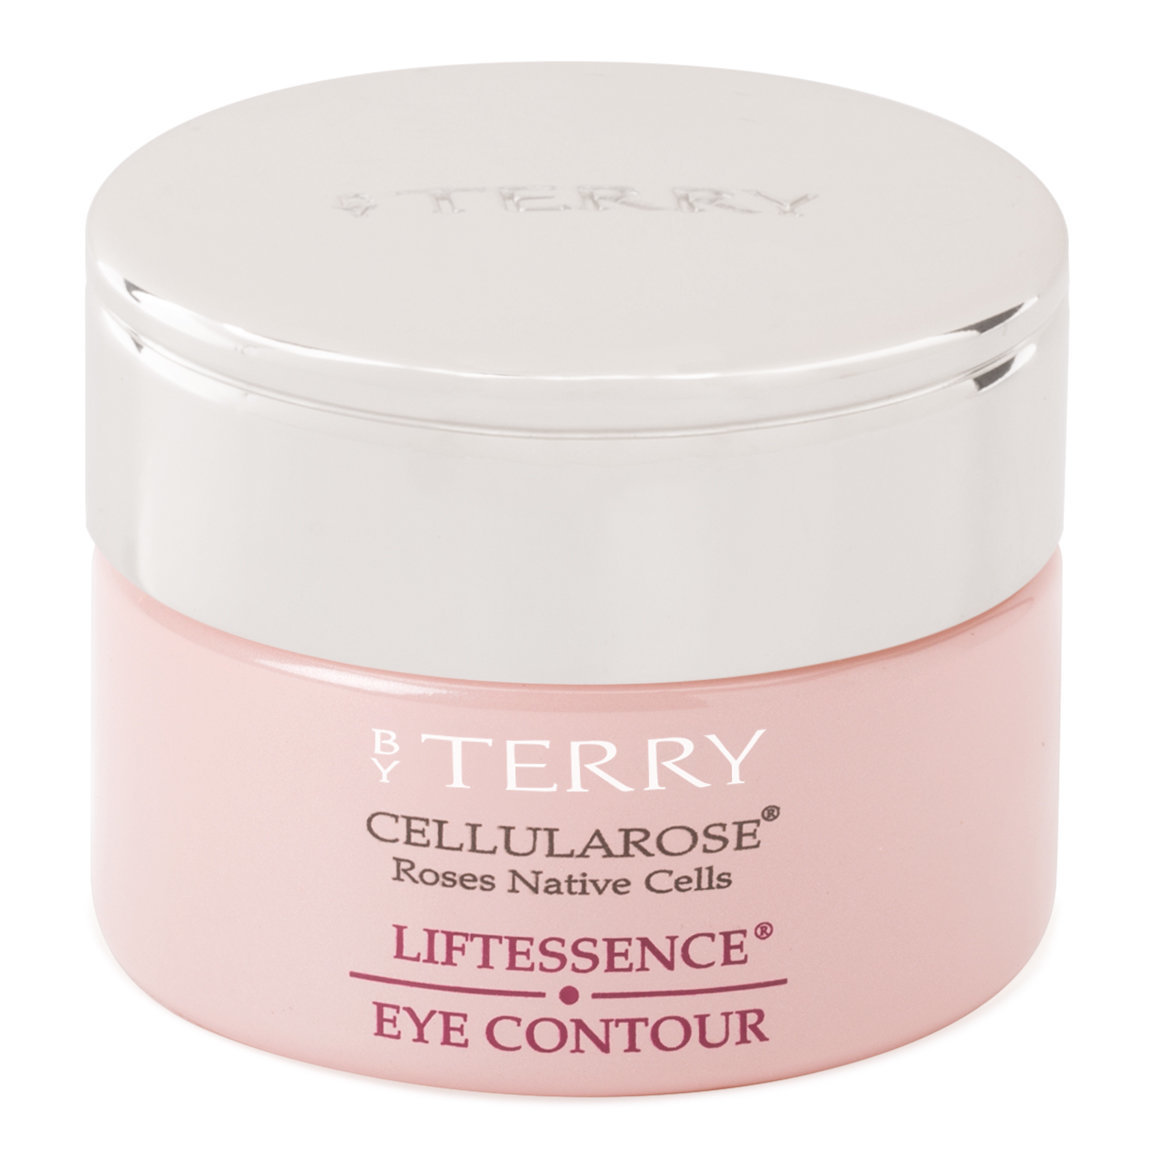 BY TERRY Liftessence Eye Contour product swatch.